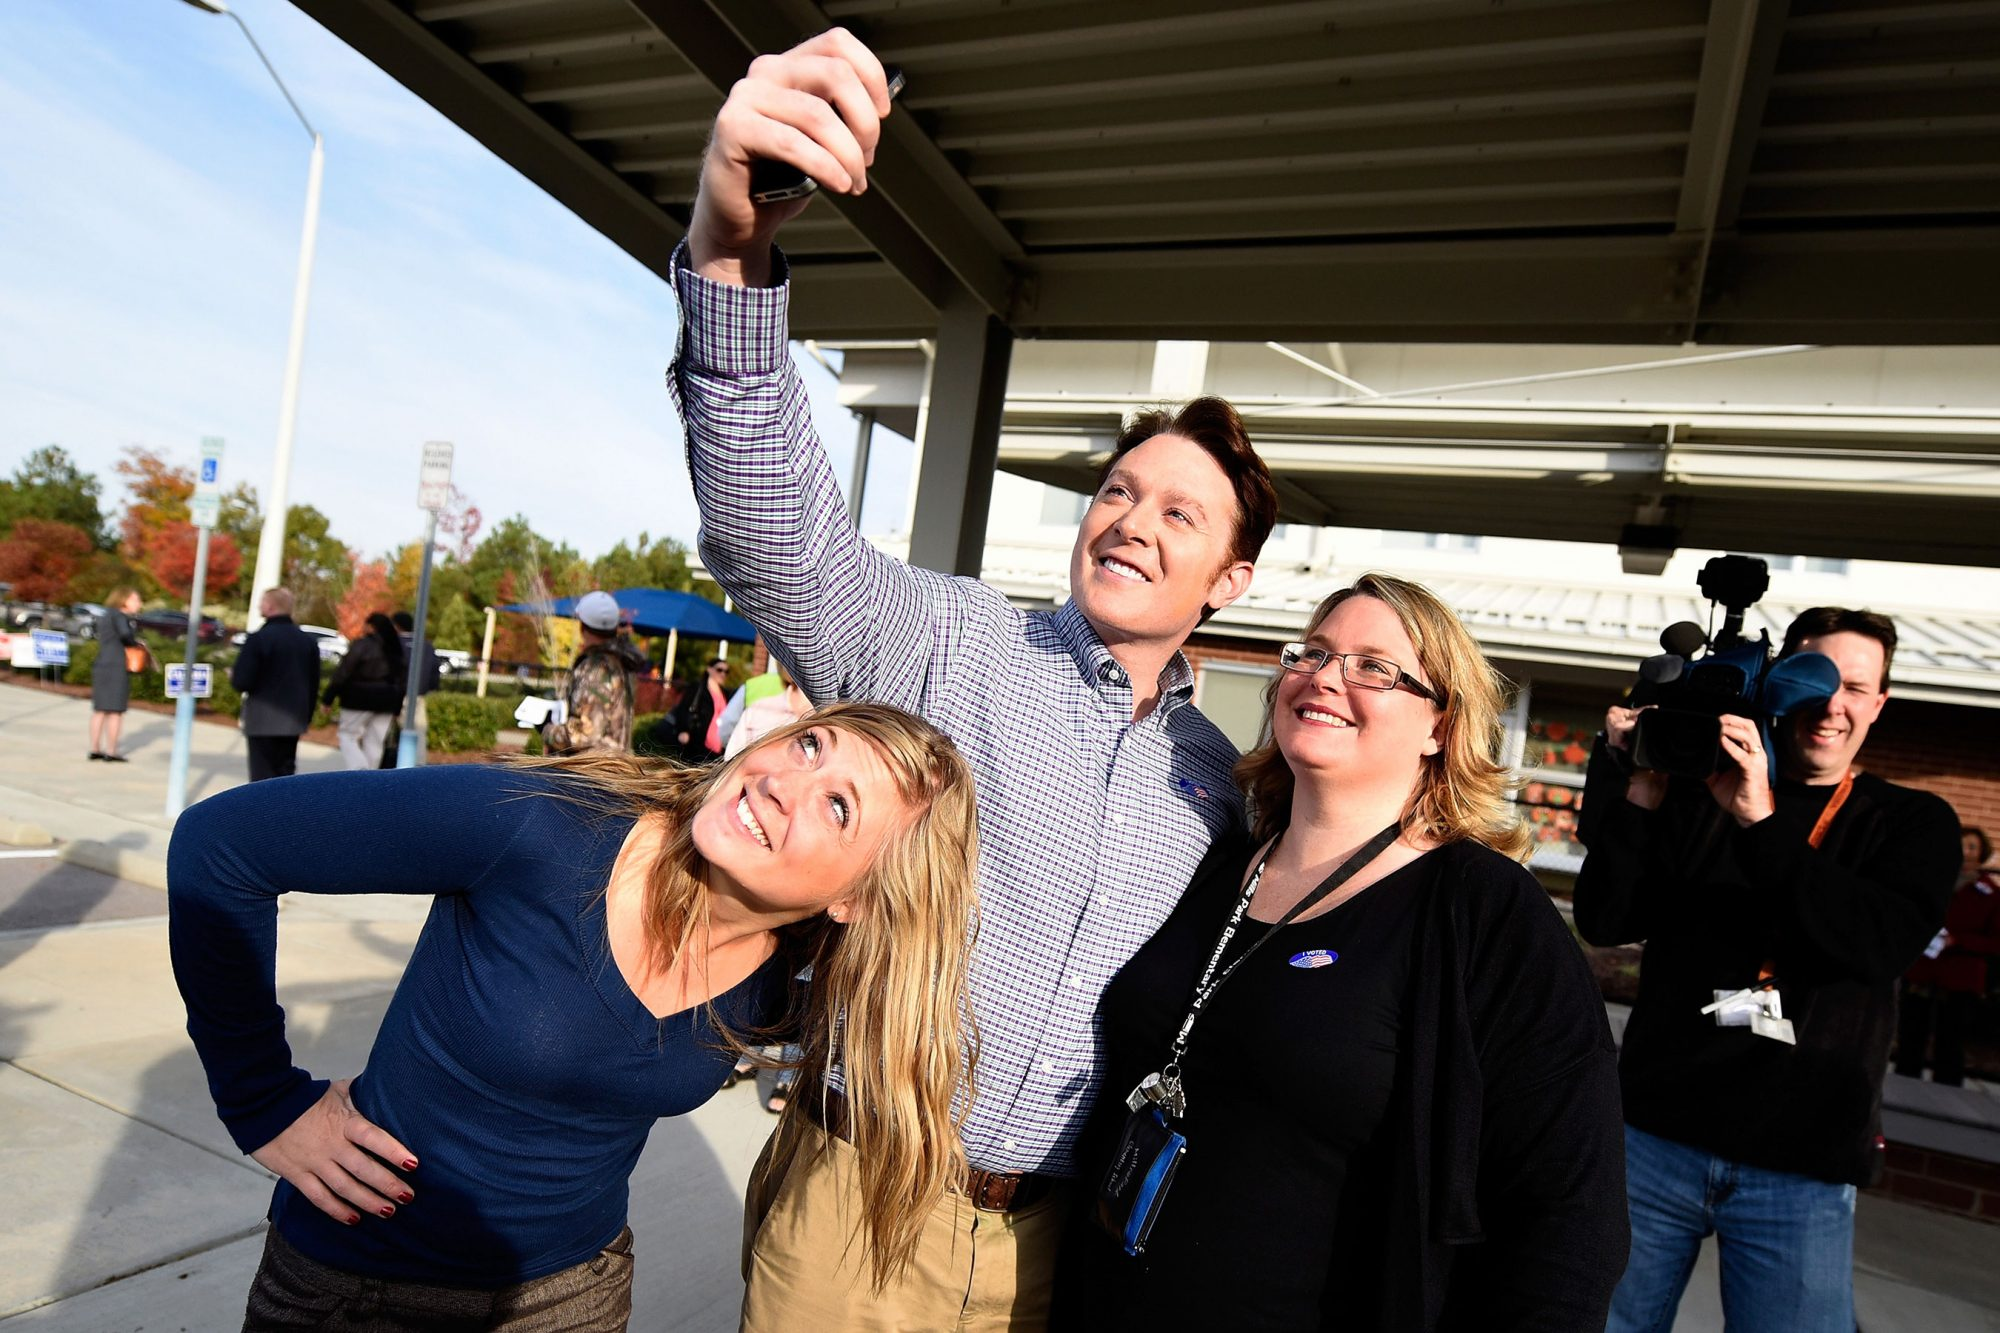 Congressional Candidate Clay Aiken Casts His Vote In The Midterm Elections